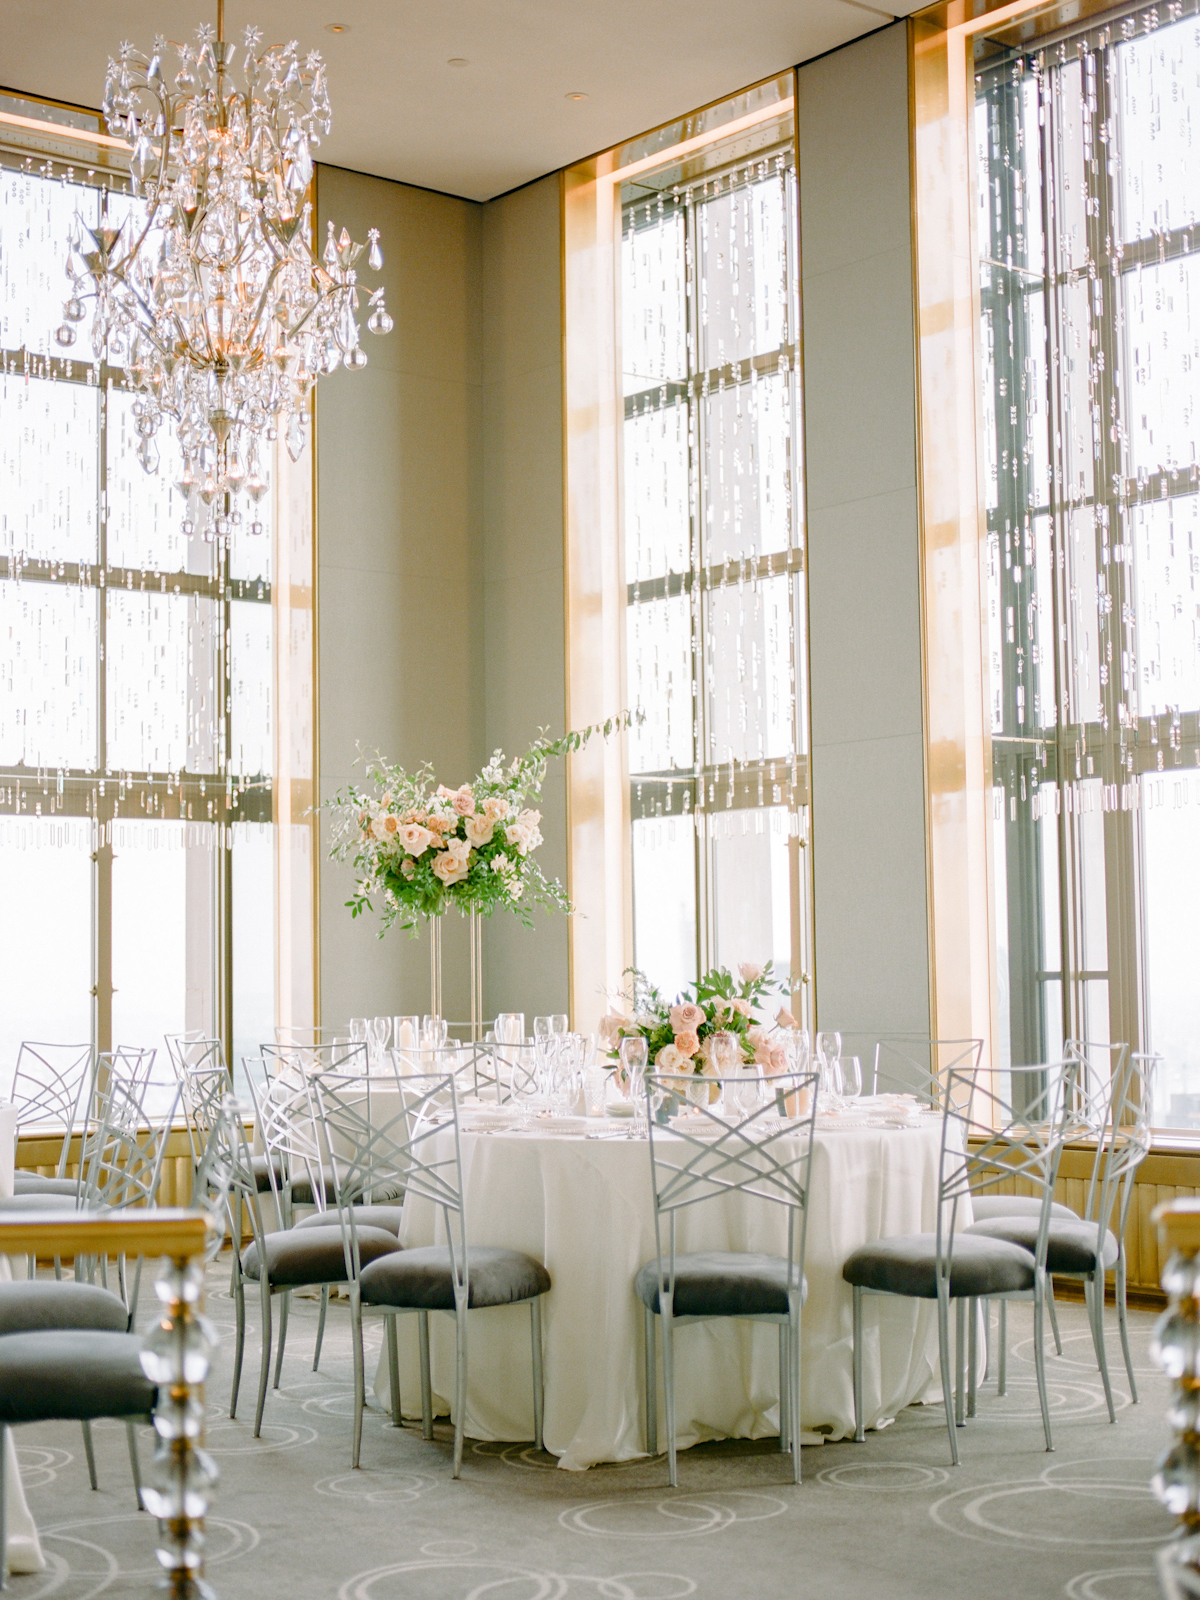 Rainbow Room wedding chandelier and flowers